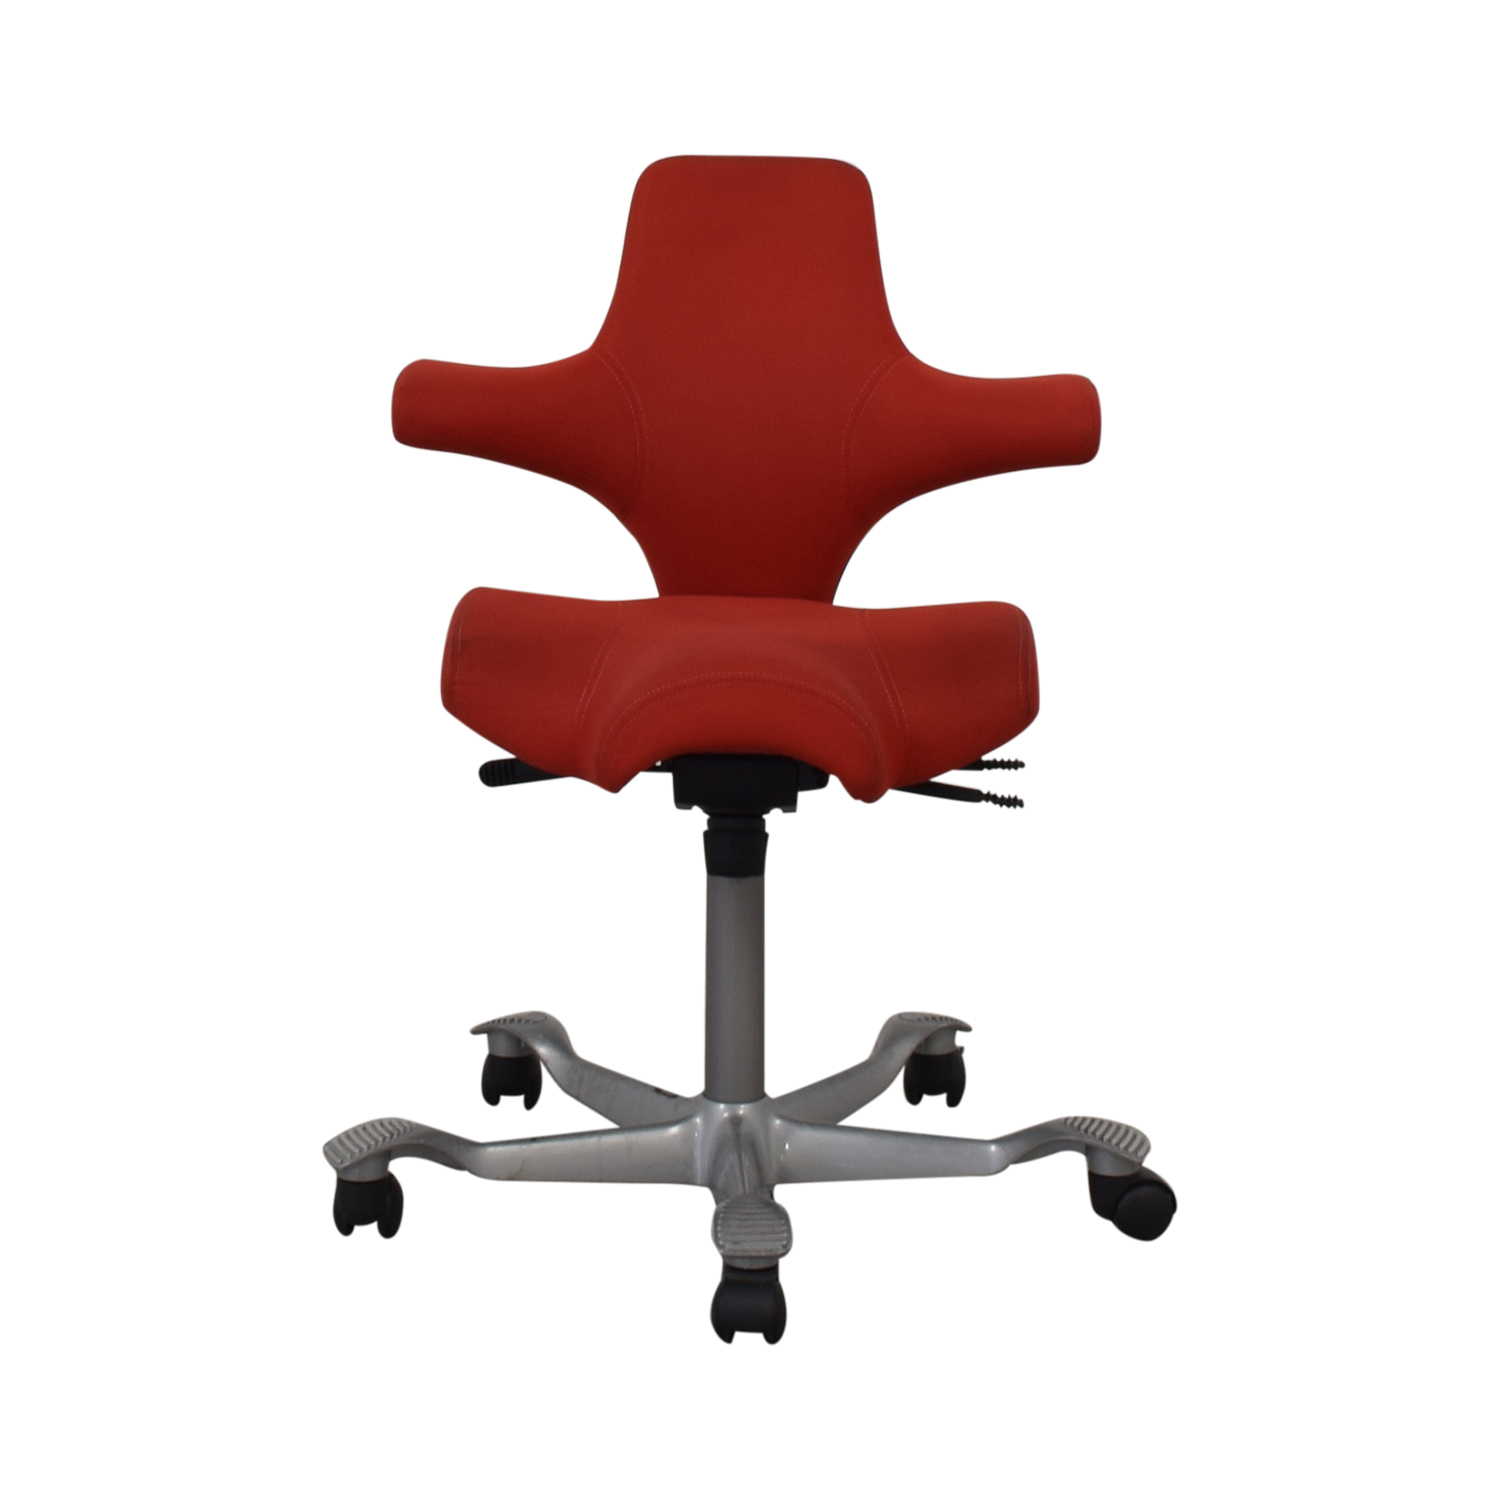 HAG HÅG Capisco Office Chair on sale